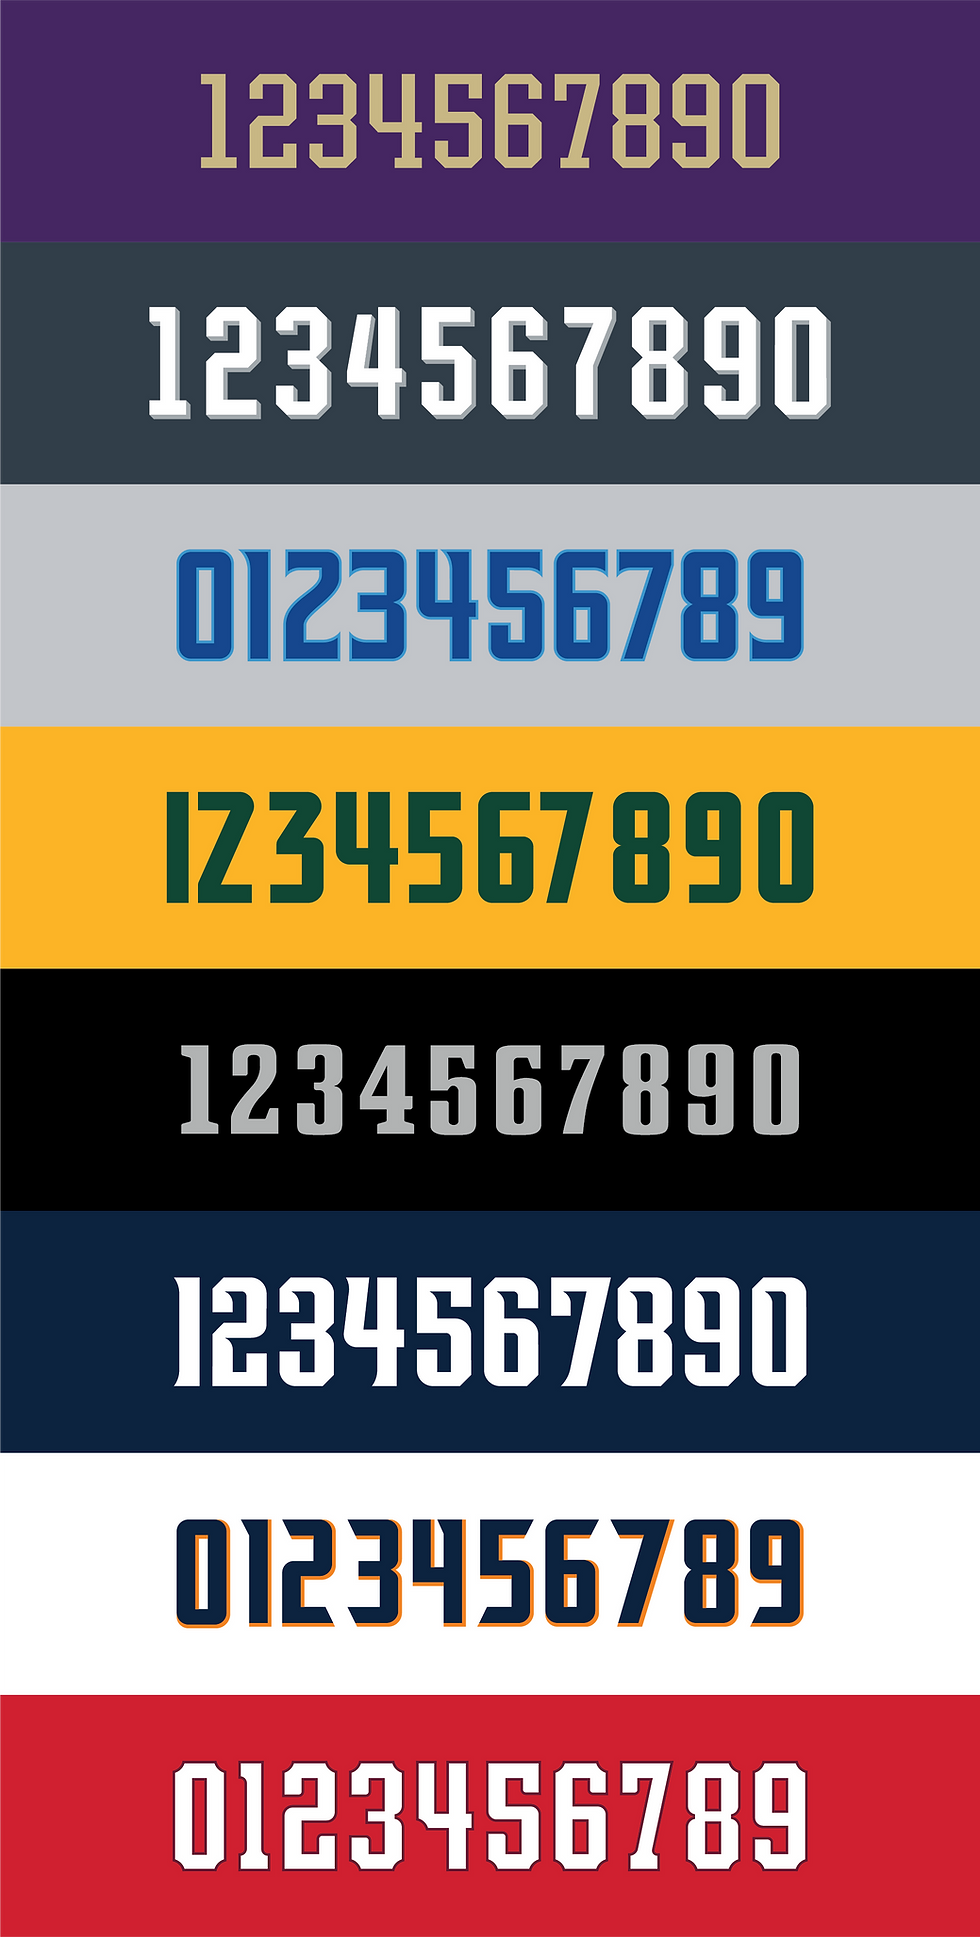 Numbers_All_11.5_.png